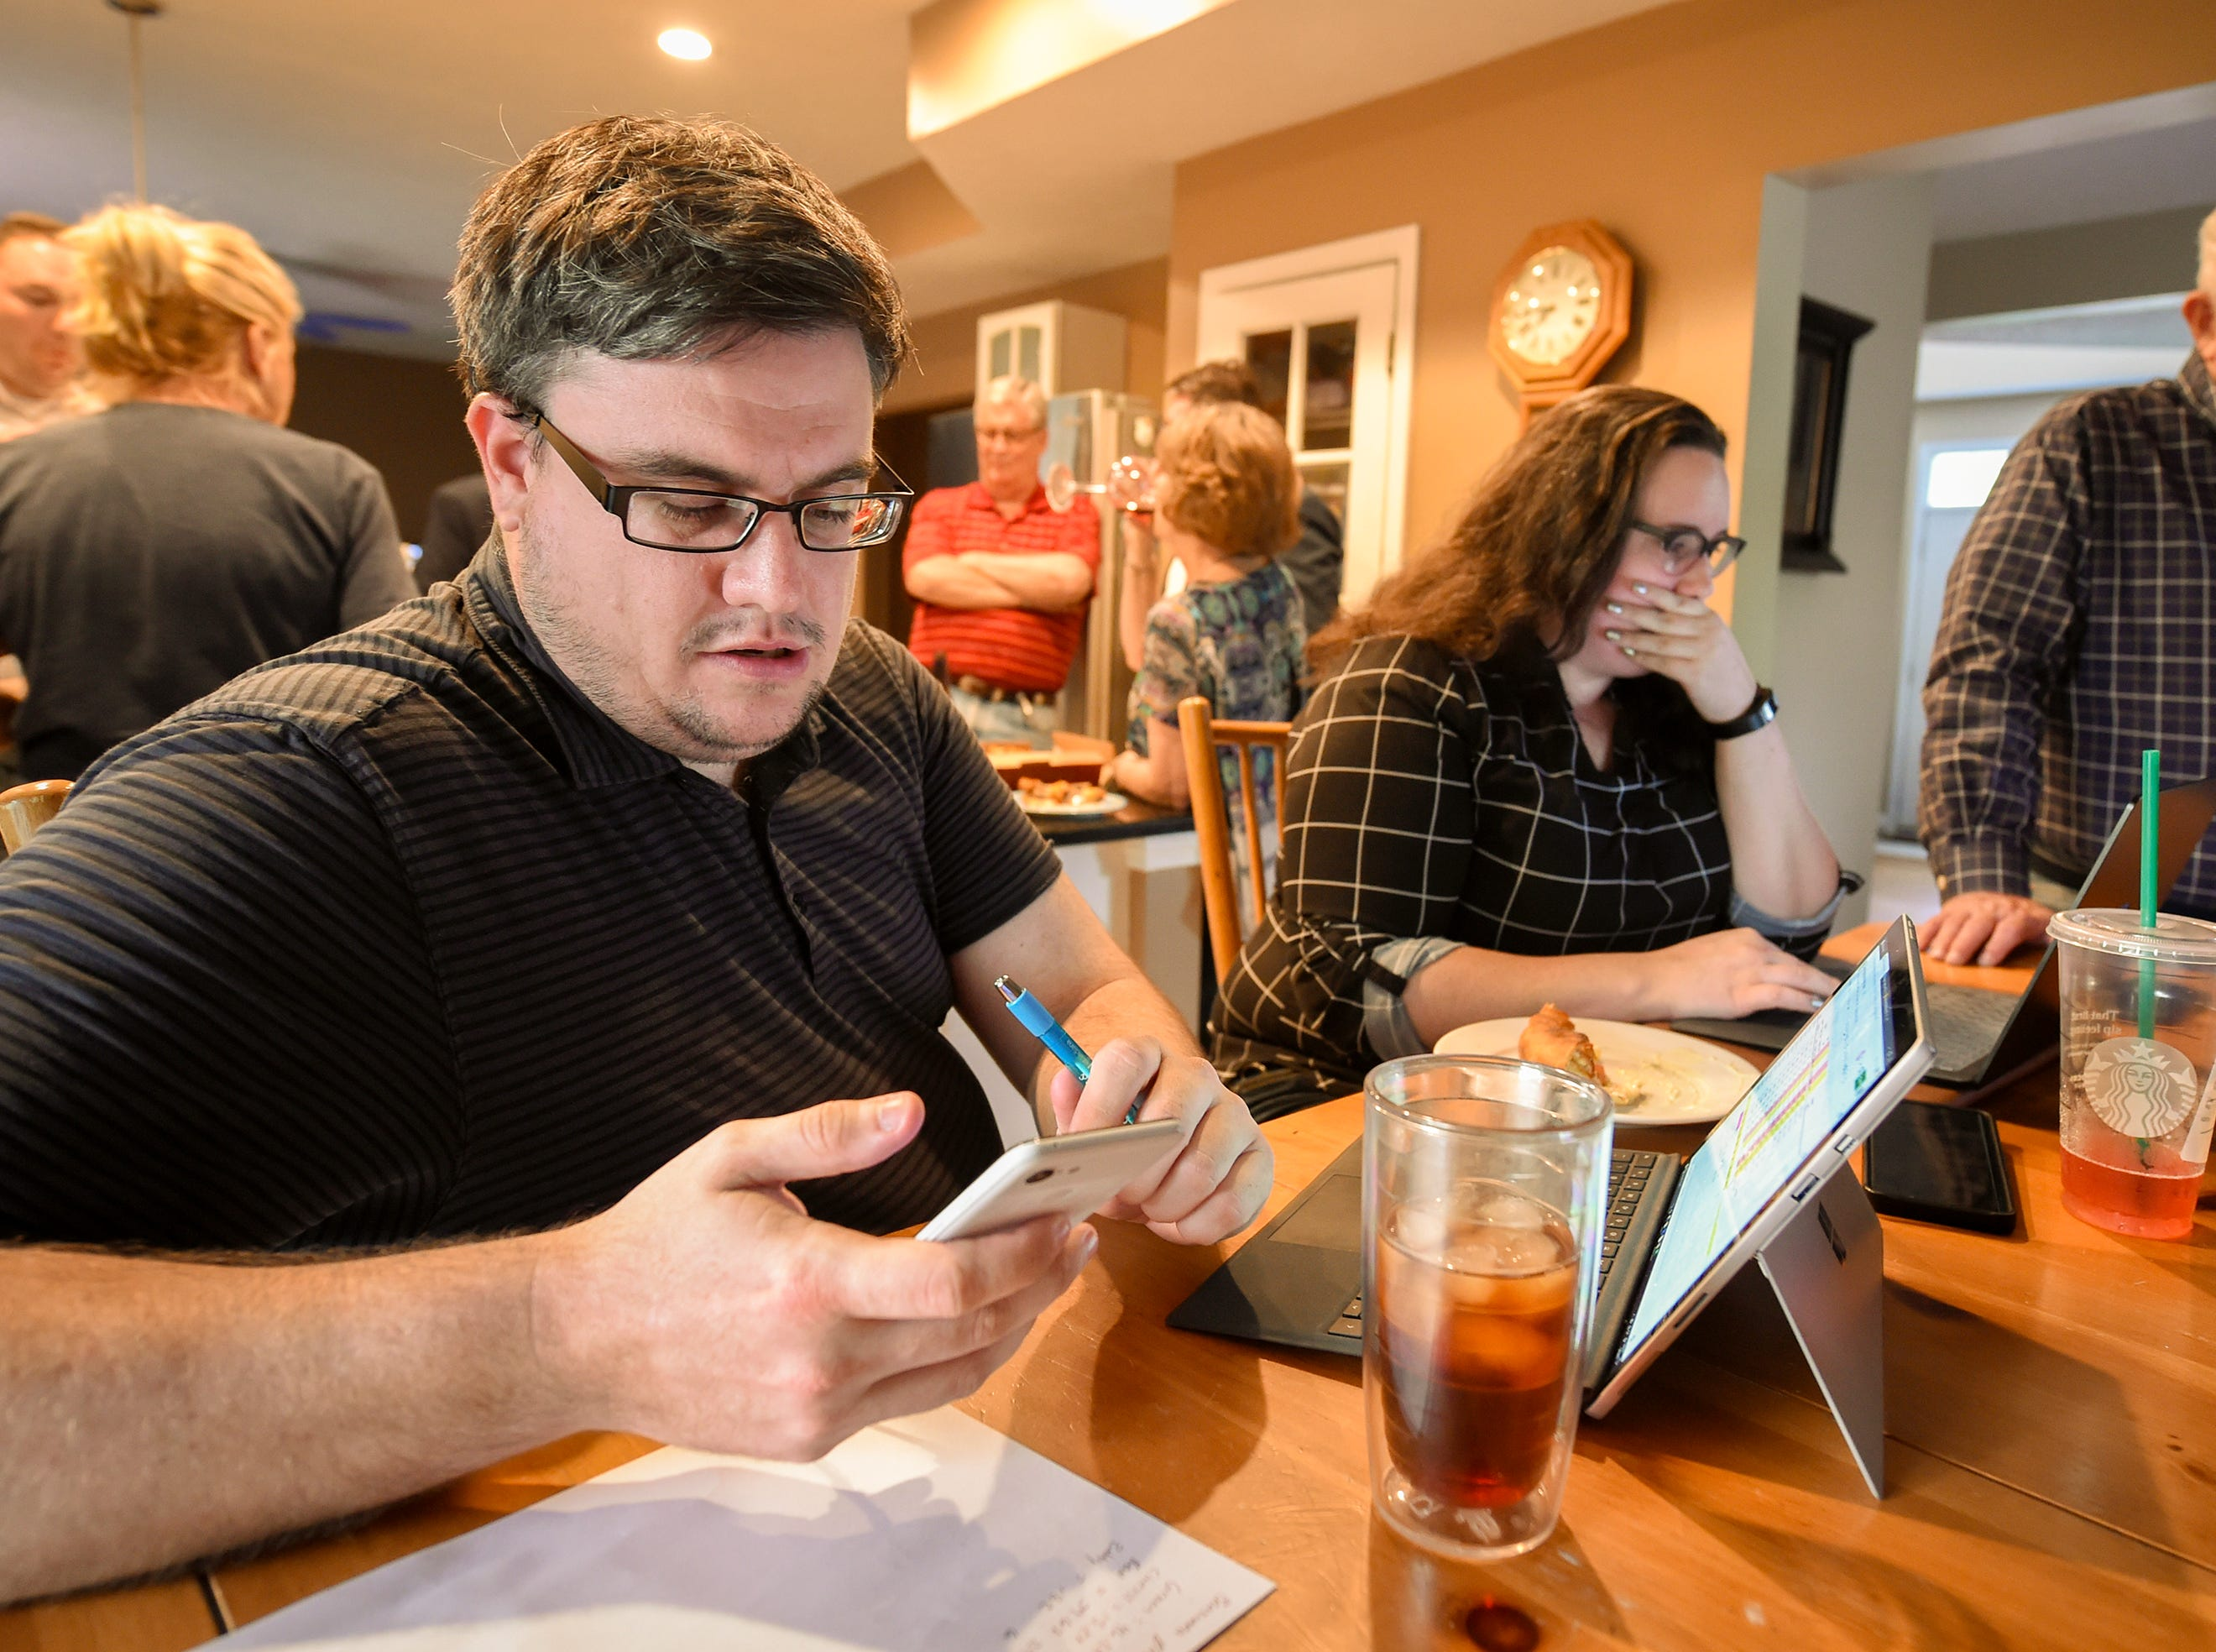 Rob Burgess, campaign manager for Fred Glynn, watches for results to come in for the Carmel mayor's race. Family, friends and supporters gathered at the home of Carmel mayoral candidate Fred Glynn as election results were publicized, Tuesday, May 7, 2019. Glynn campaigned for the office in hopes of unseating incumbent Jim Brainard who was seeking his seventh term in the office.